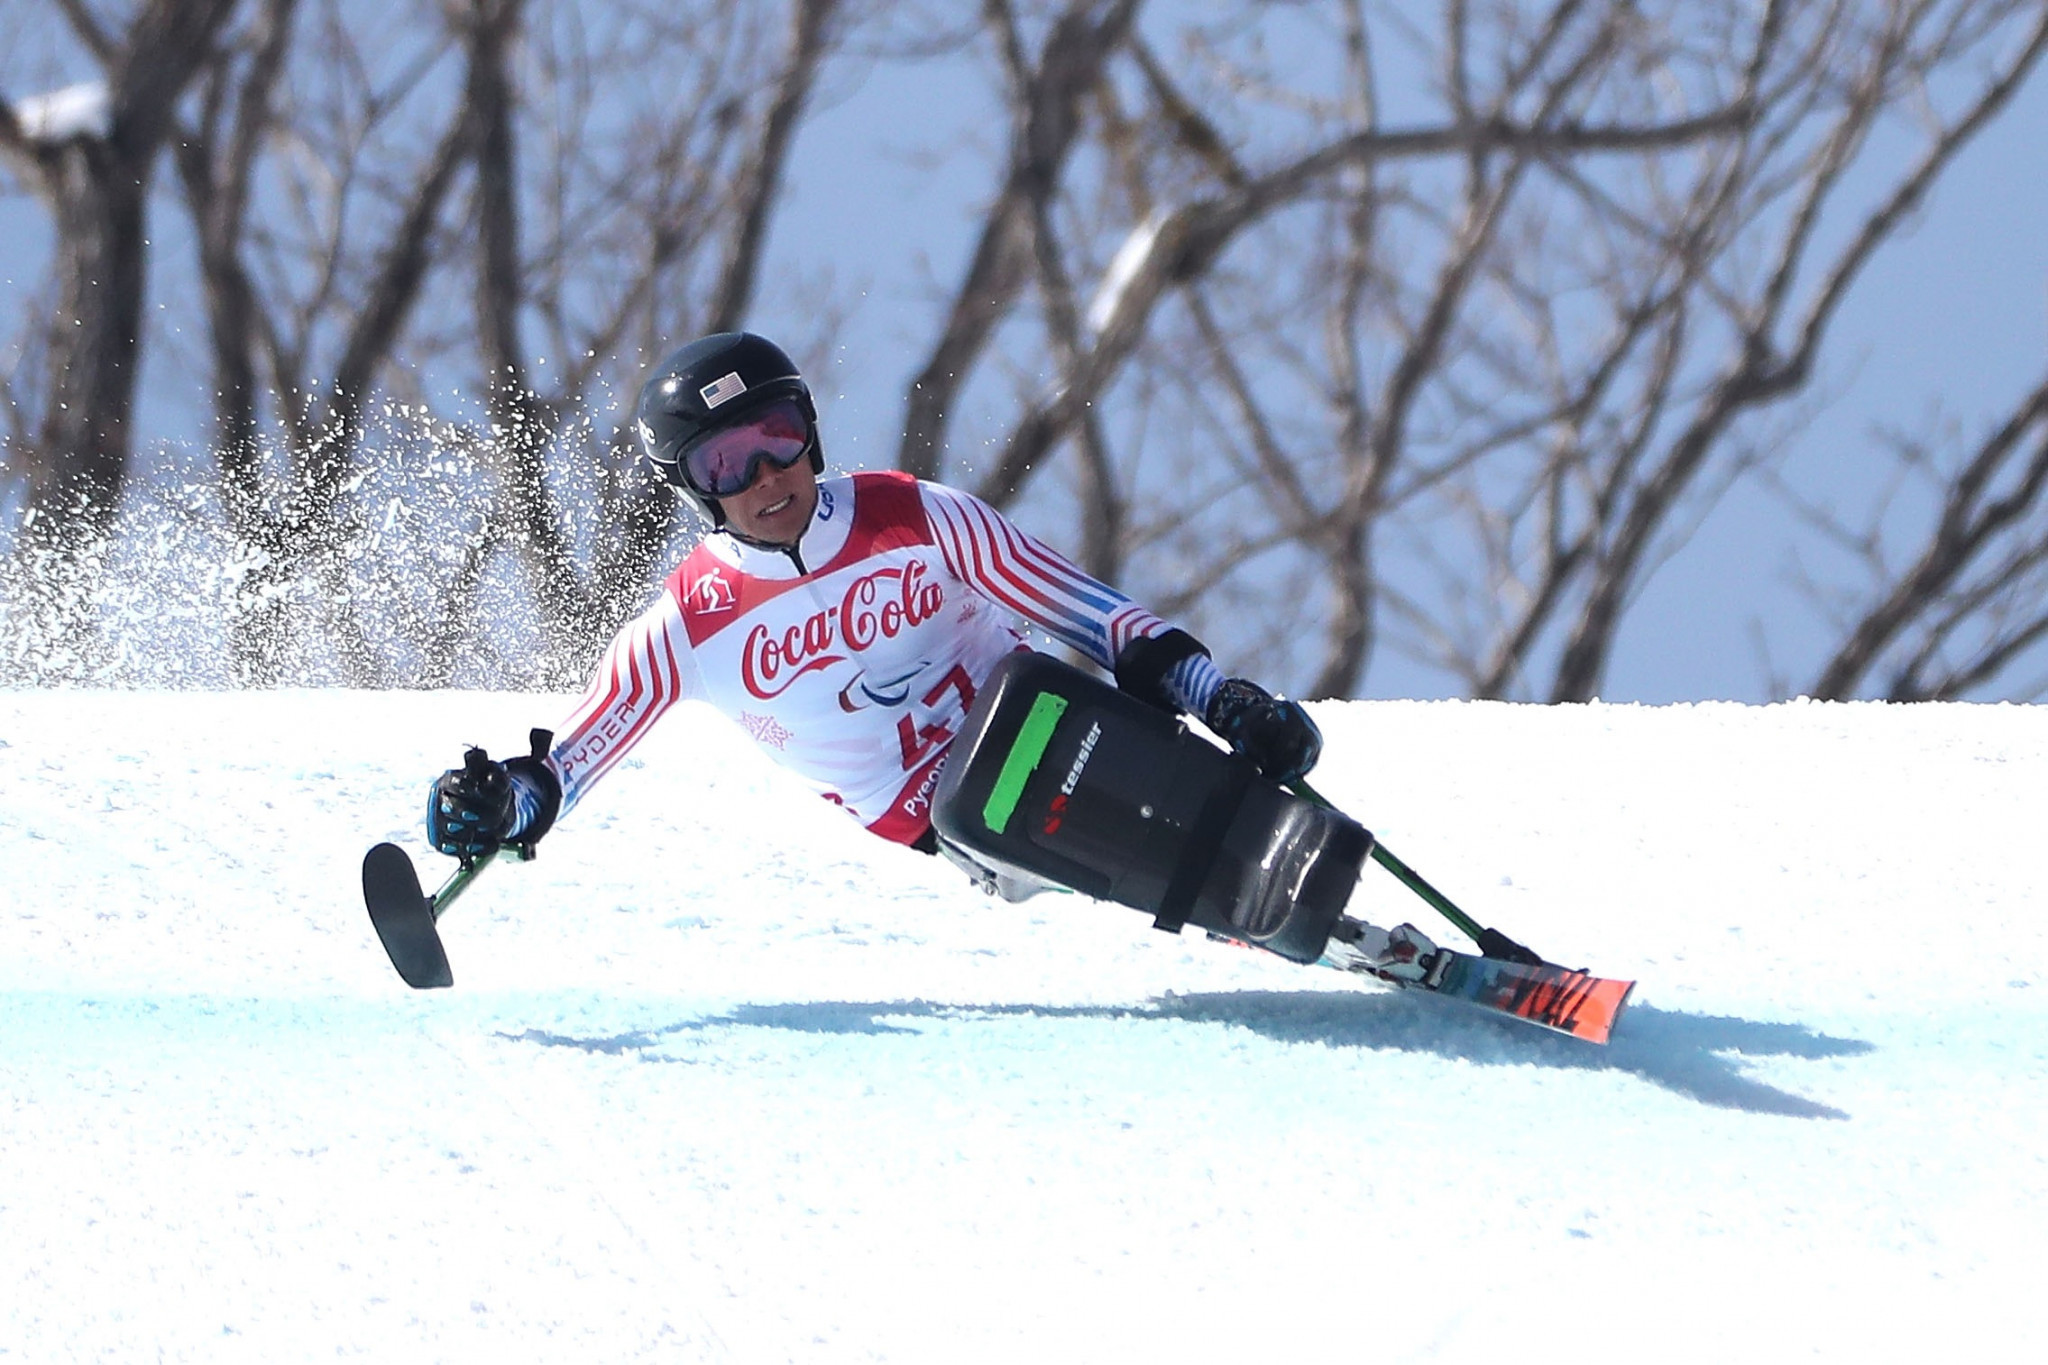 Fishing trip with Paralympic gold medal-winning Alpine skier Kurka up for bidding in online auction